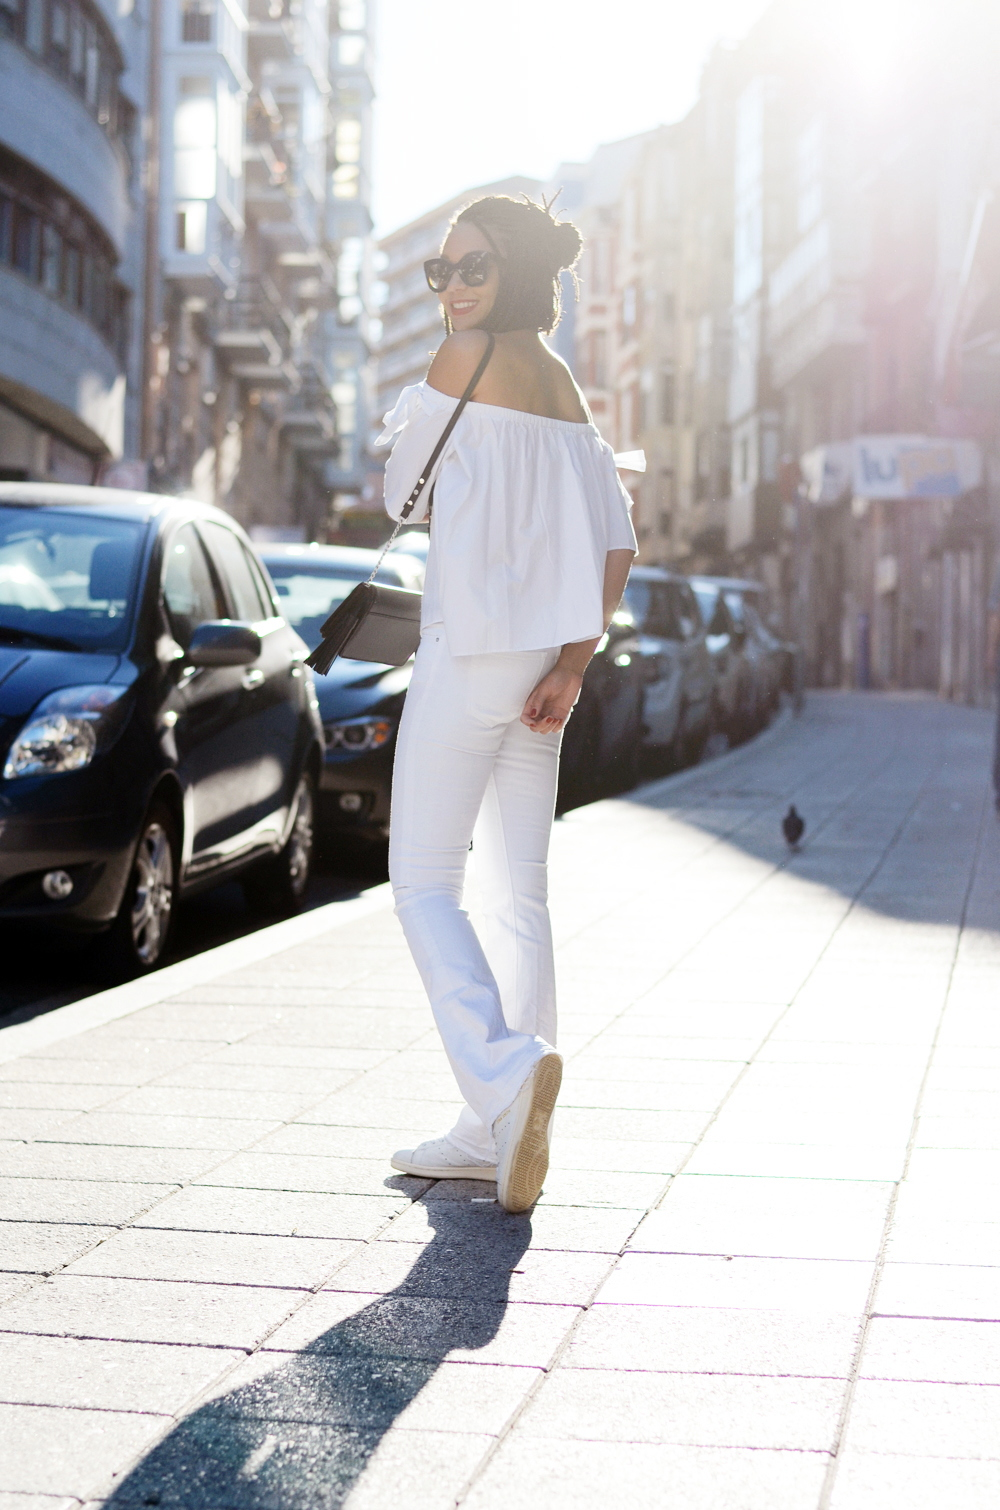 mercredie-blog-fashion-blogger-mode-geneve-suisse-santander-celine-marta-all-white-outfit-flare-elisabetta-franchetti-ceinture-kooples4